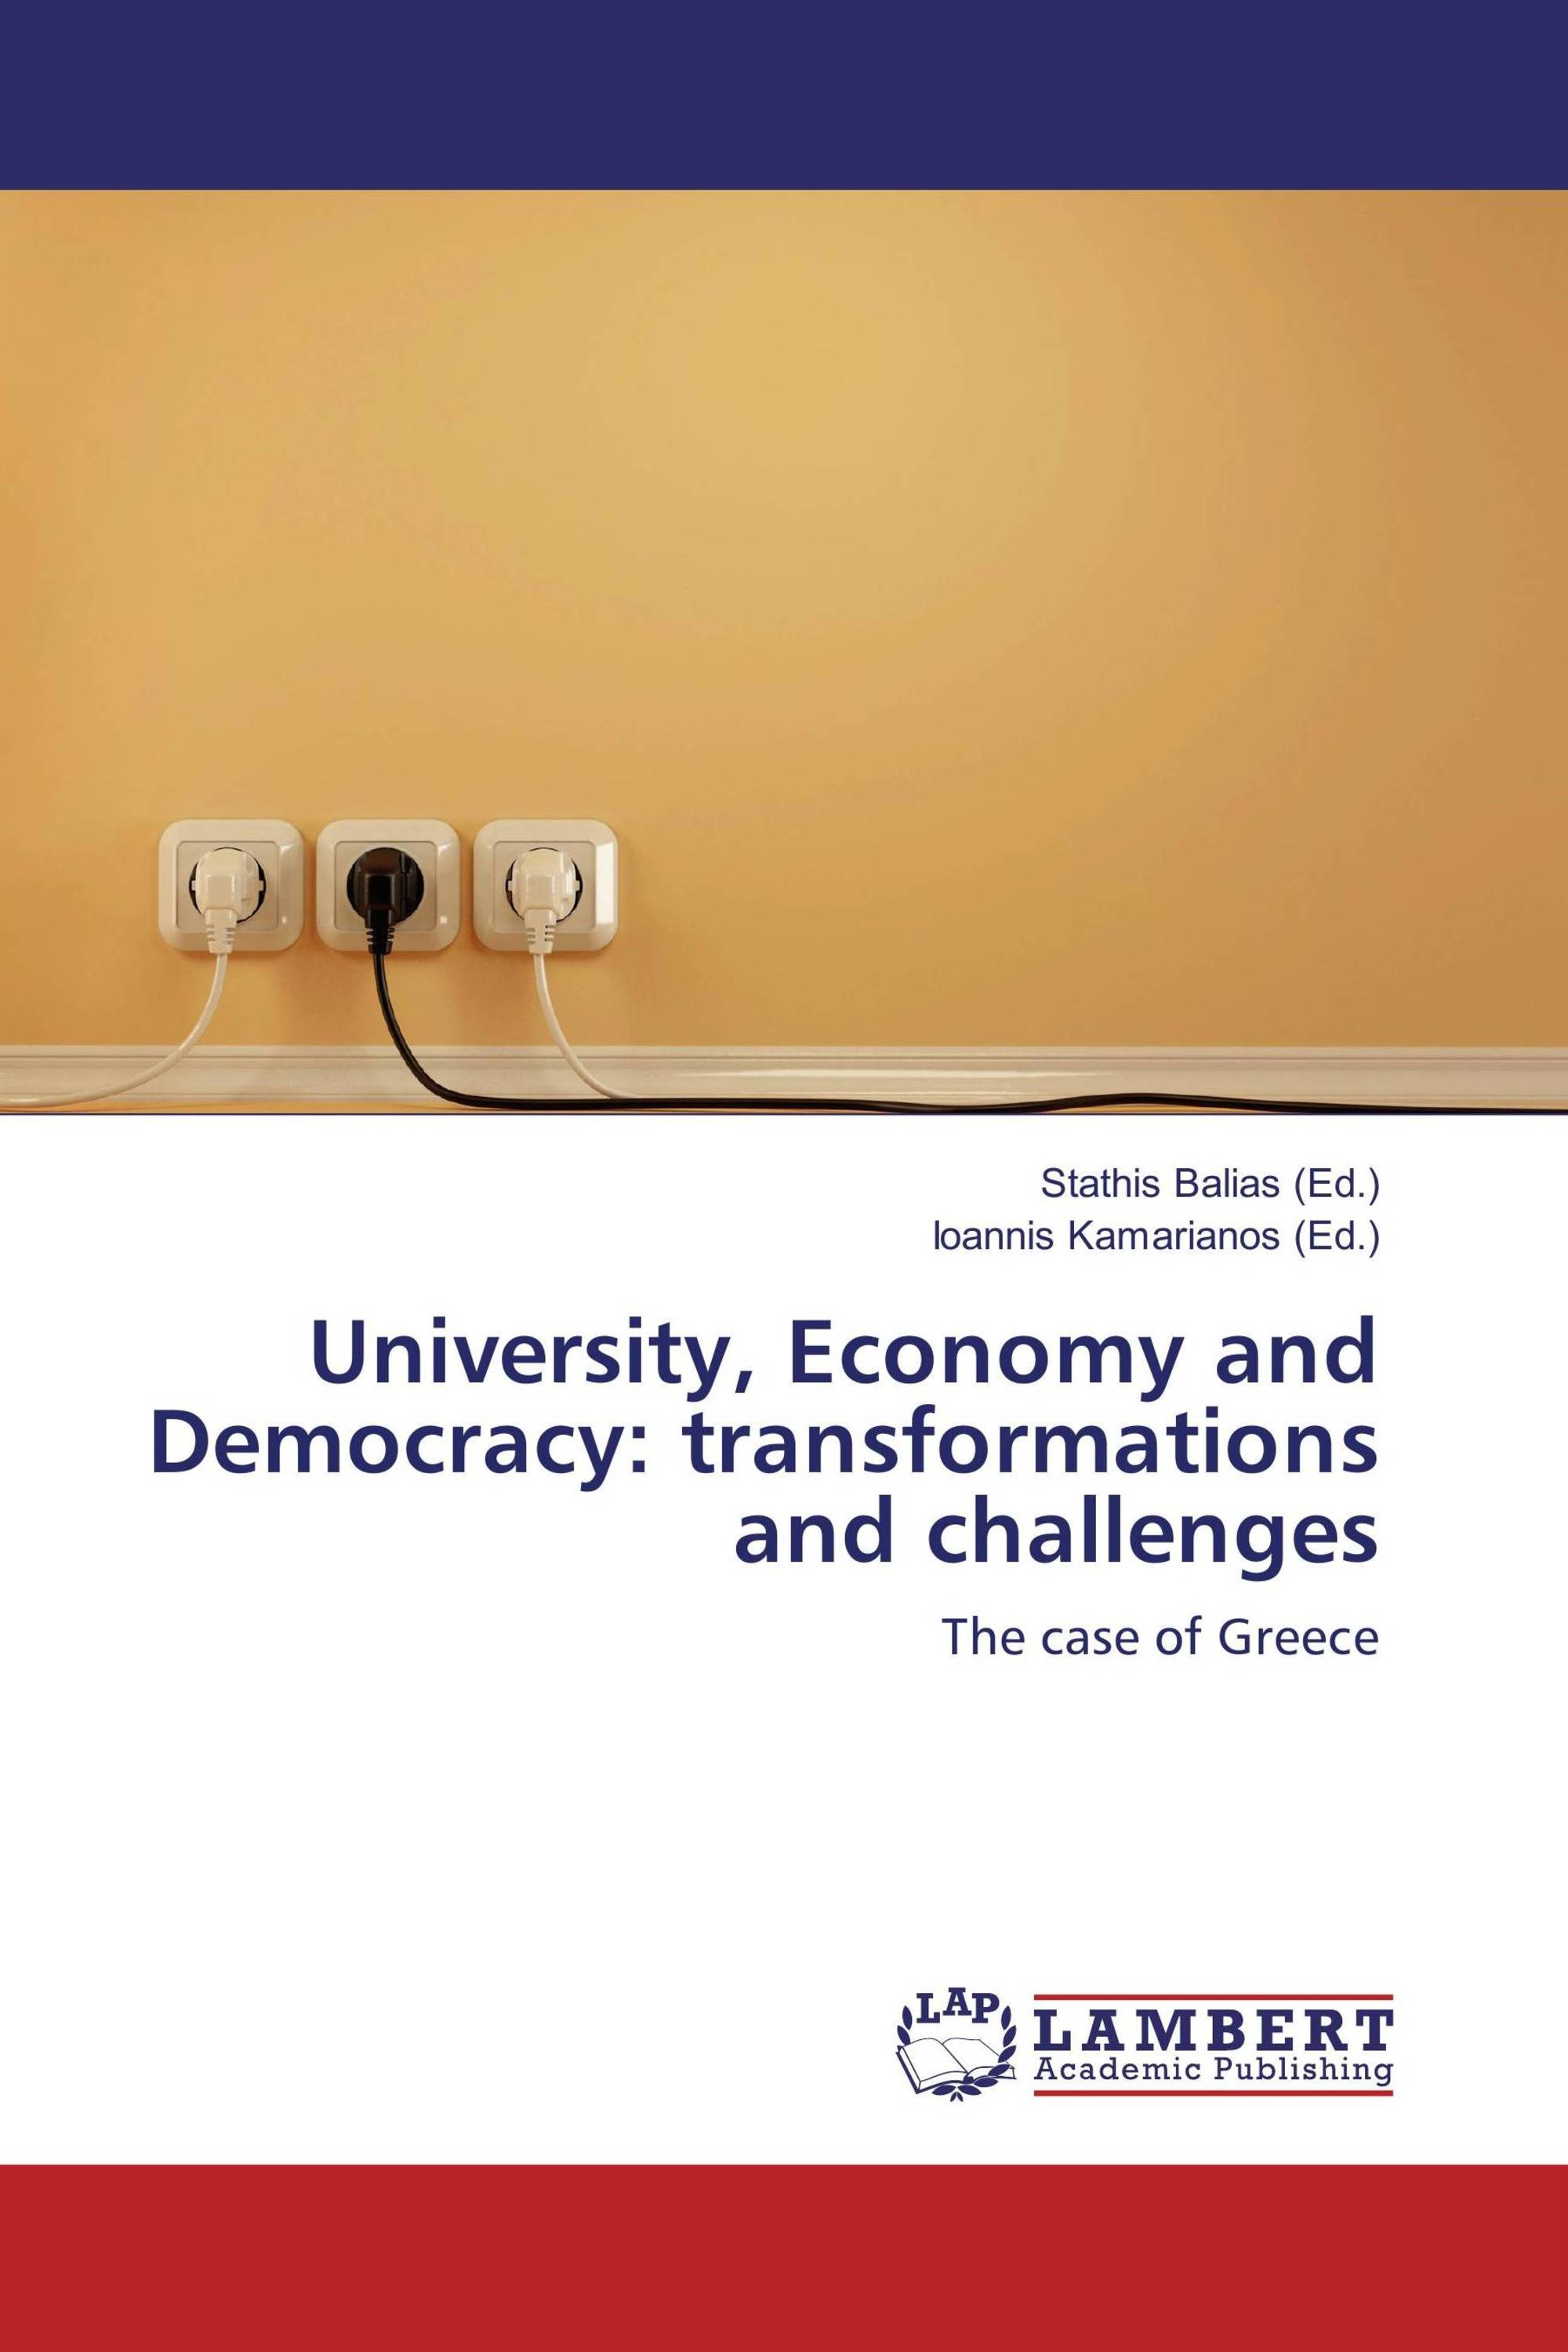 University, Economy and Democracy: transformations and challenges